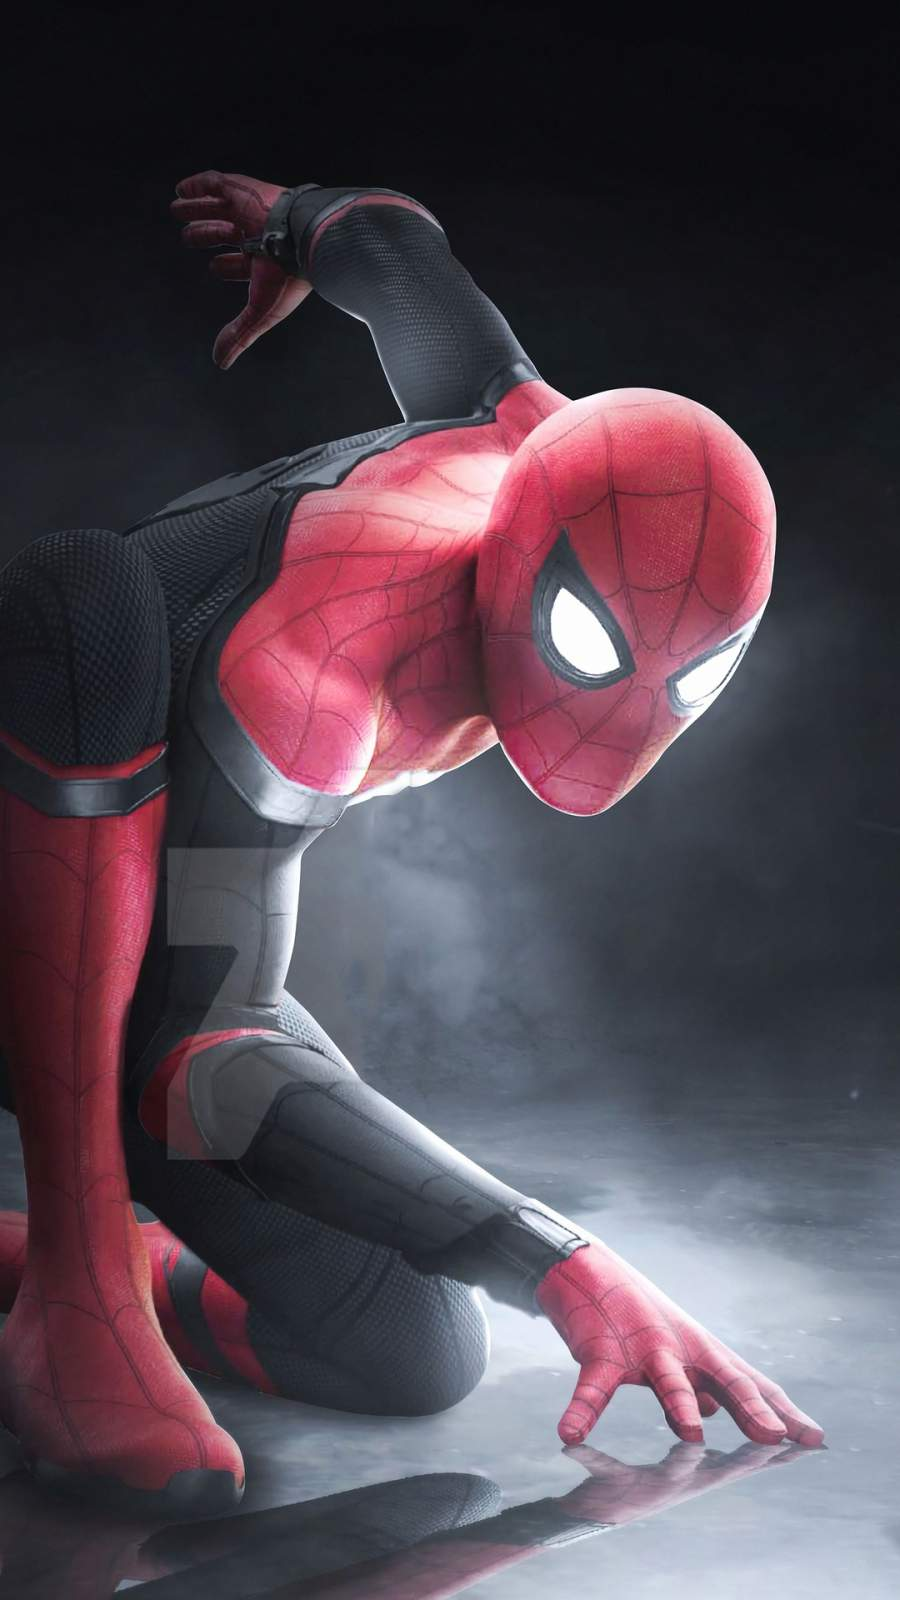 Spiderman Art 4K iPhone Wallpaper